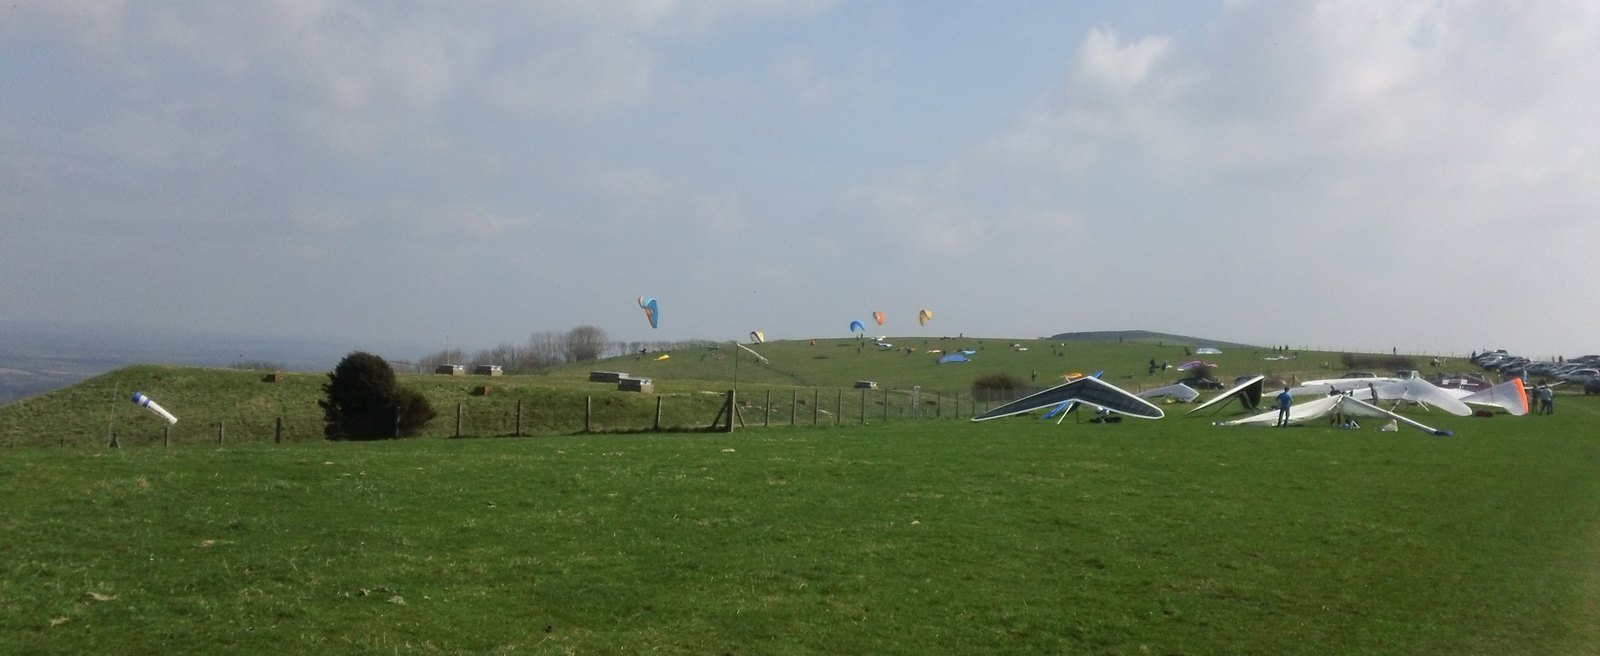 Paragliders at Firle Bostal along the South Downs Way, East Sussex